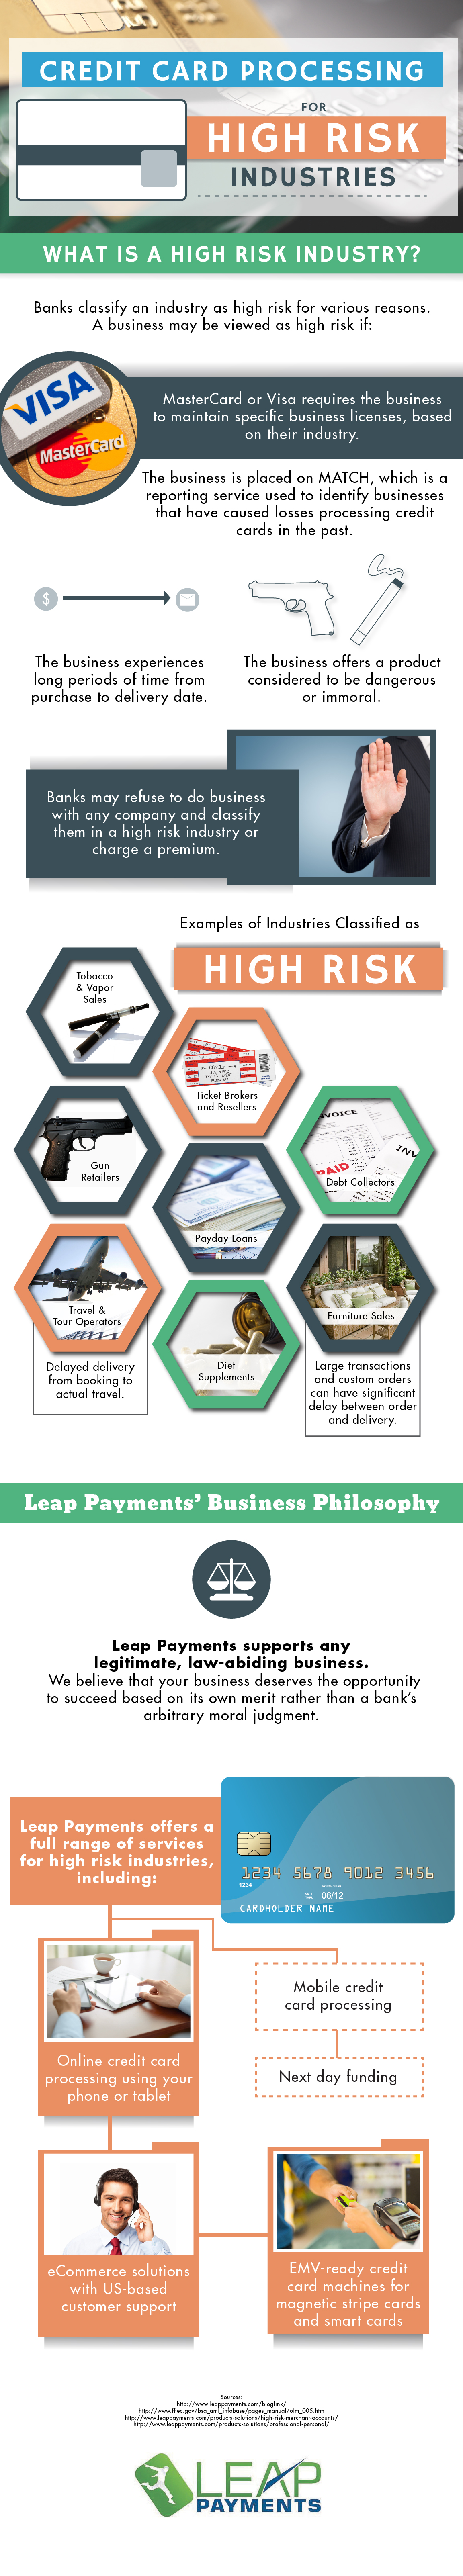 Credit card processing for high risk industries leap payments card processing colourmoves